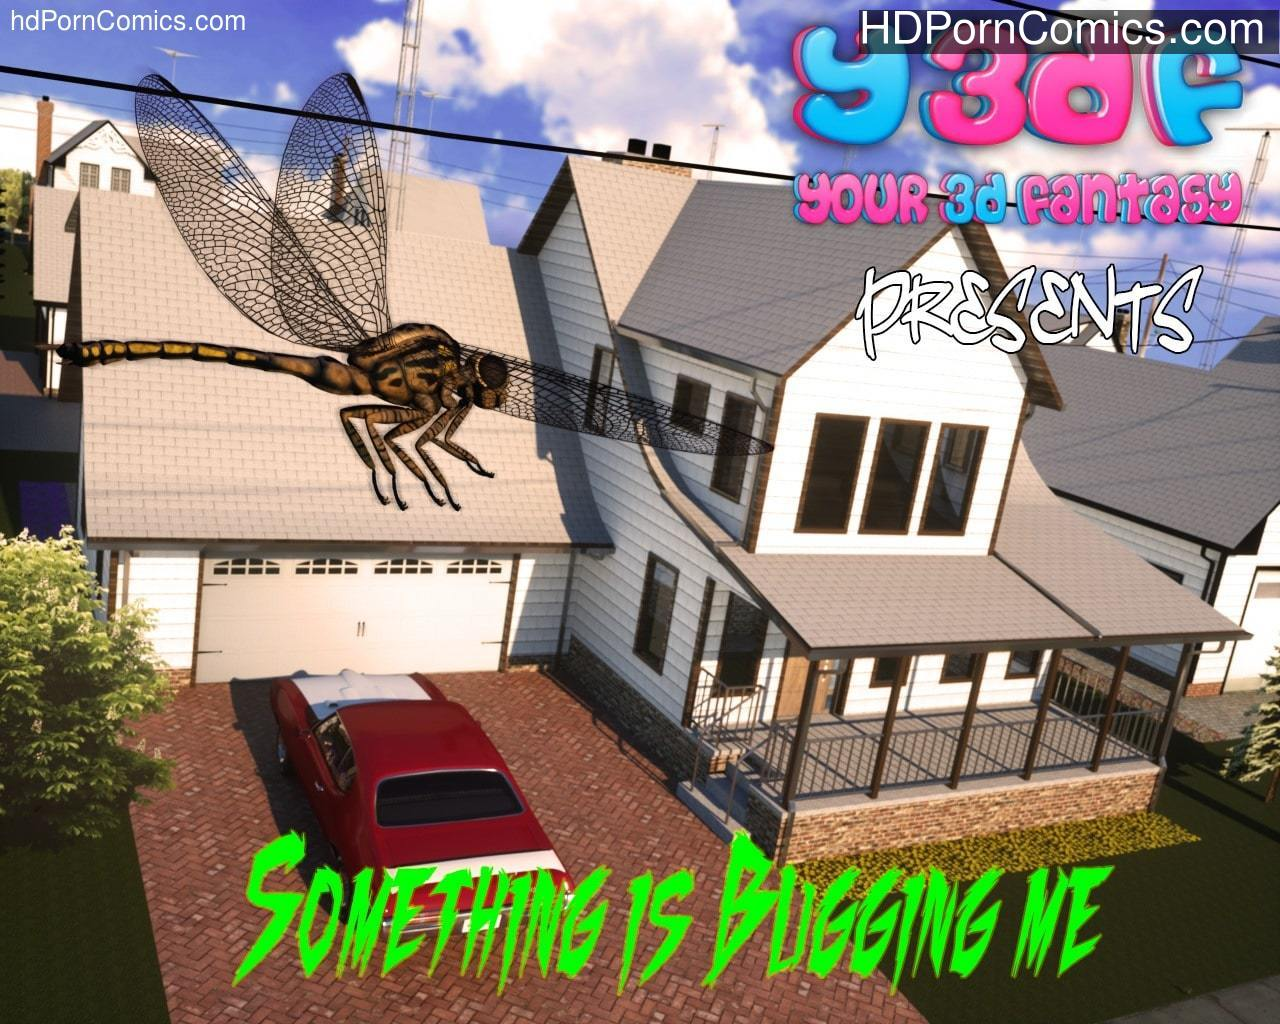 Y3DF- Something is Bugging Me1 free sex comic